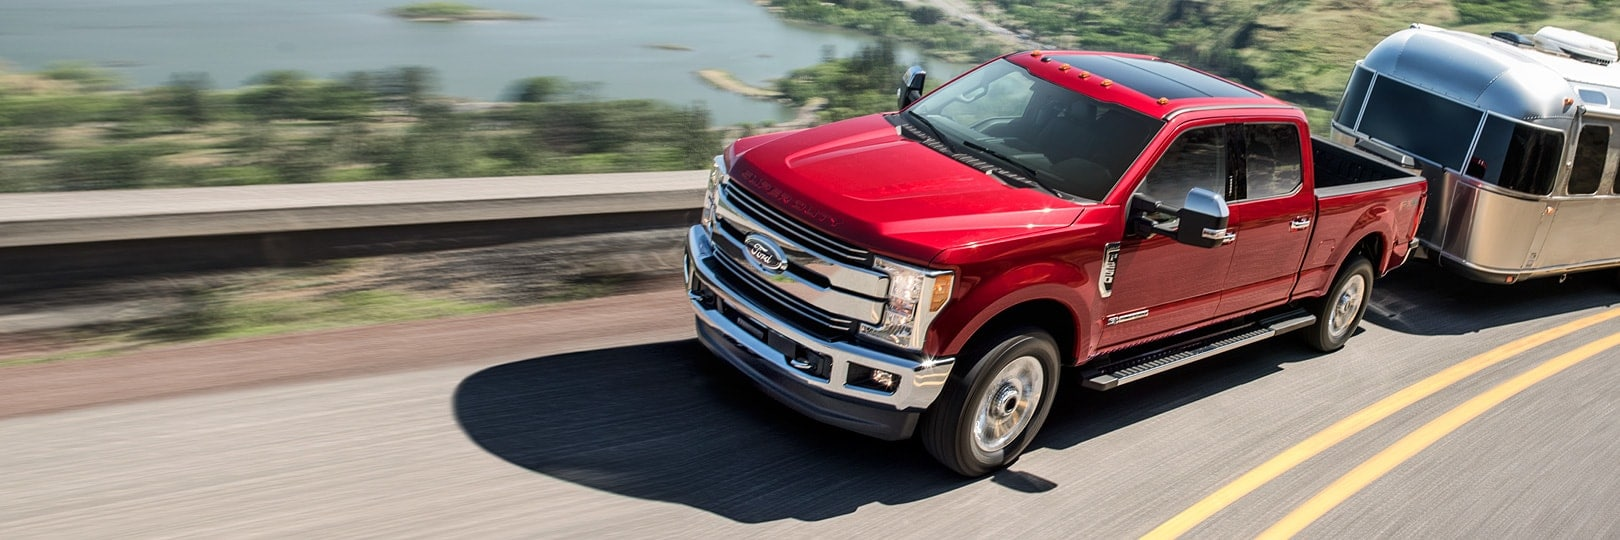 Ford Super Duty Trucks For Sale Near Waunakee Ford F 250 Sd Trucks